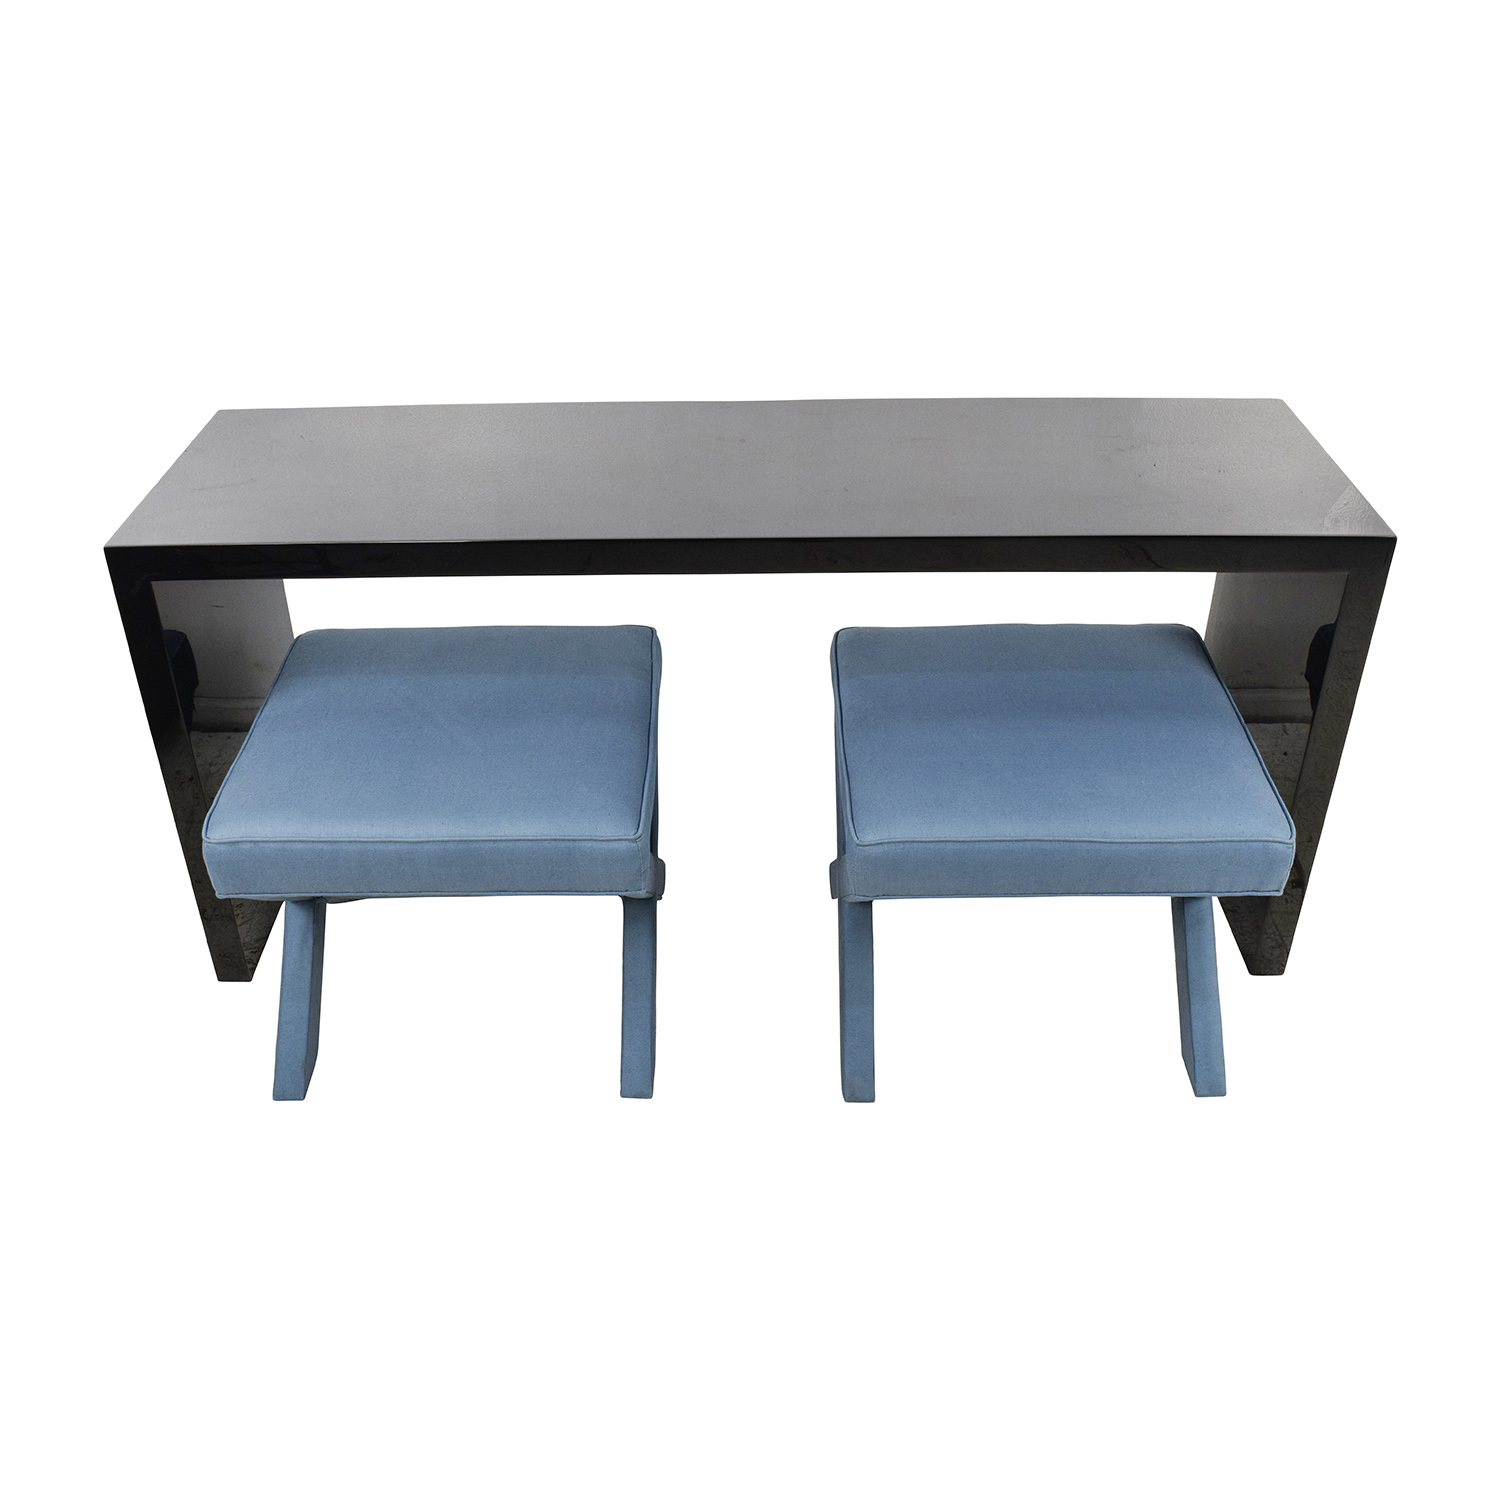 Jonathan Adler Console And Benches / Tables; Jonathan Adler Jonathan Adler  Console And Benches Nyc ...